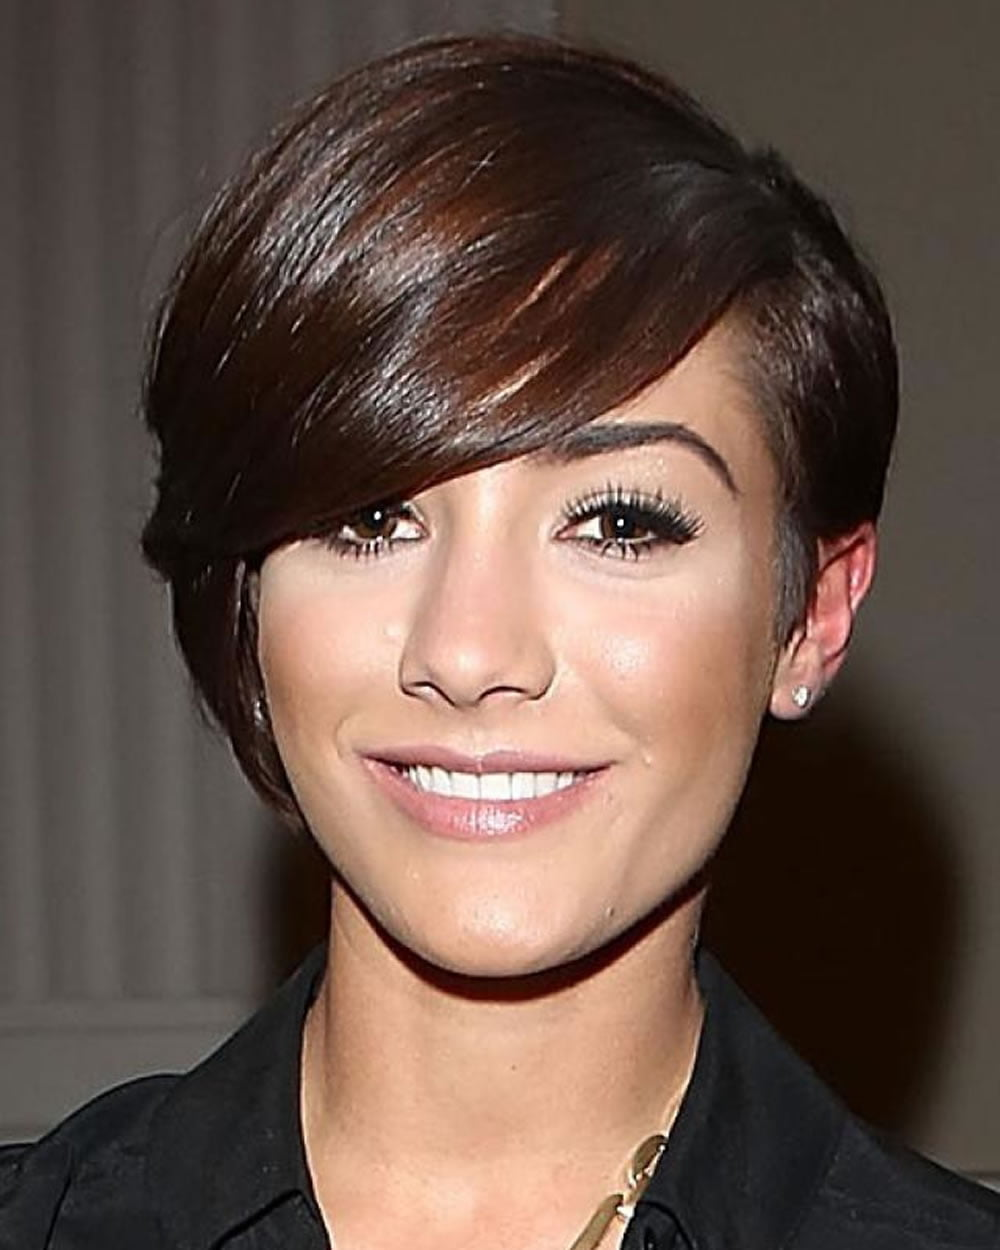 Pixie or Short Hairstyle Images 2020 amp Short Hair Cut